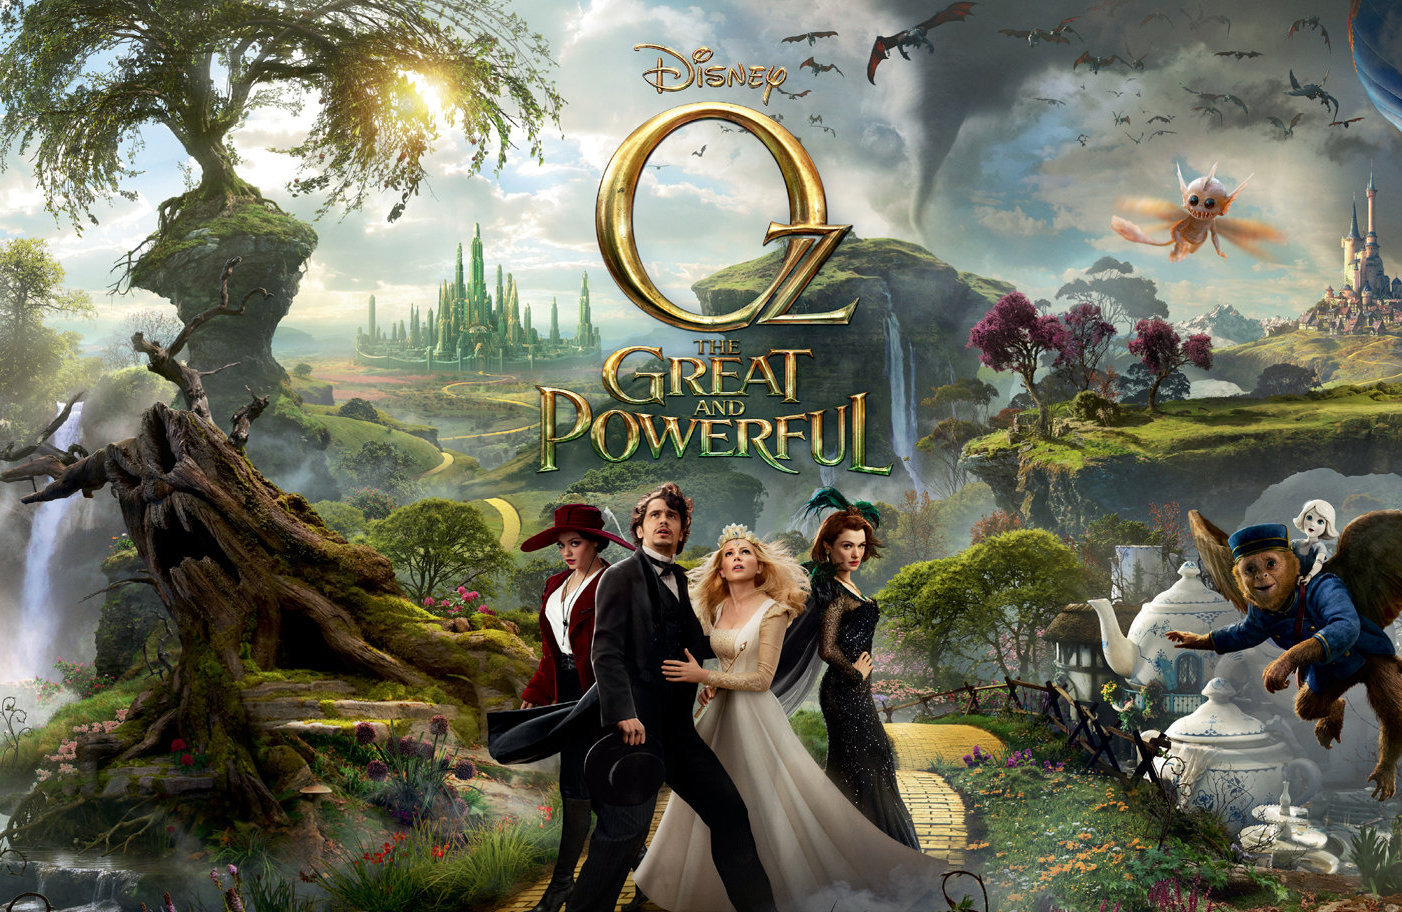 Oz the Great and Powerful - Film Review - Everywhere - by Mieka Black